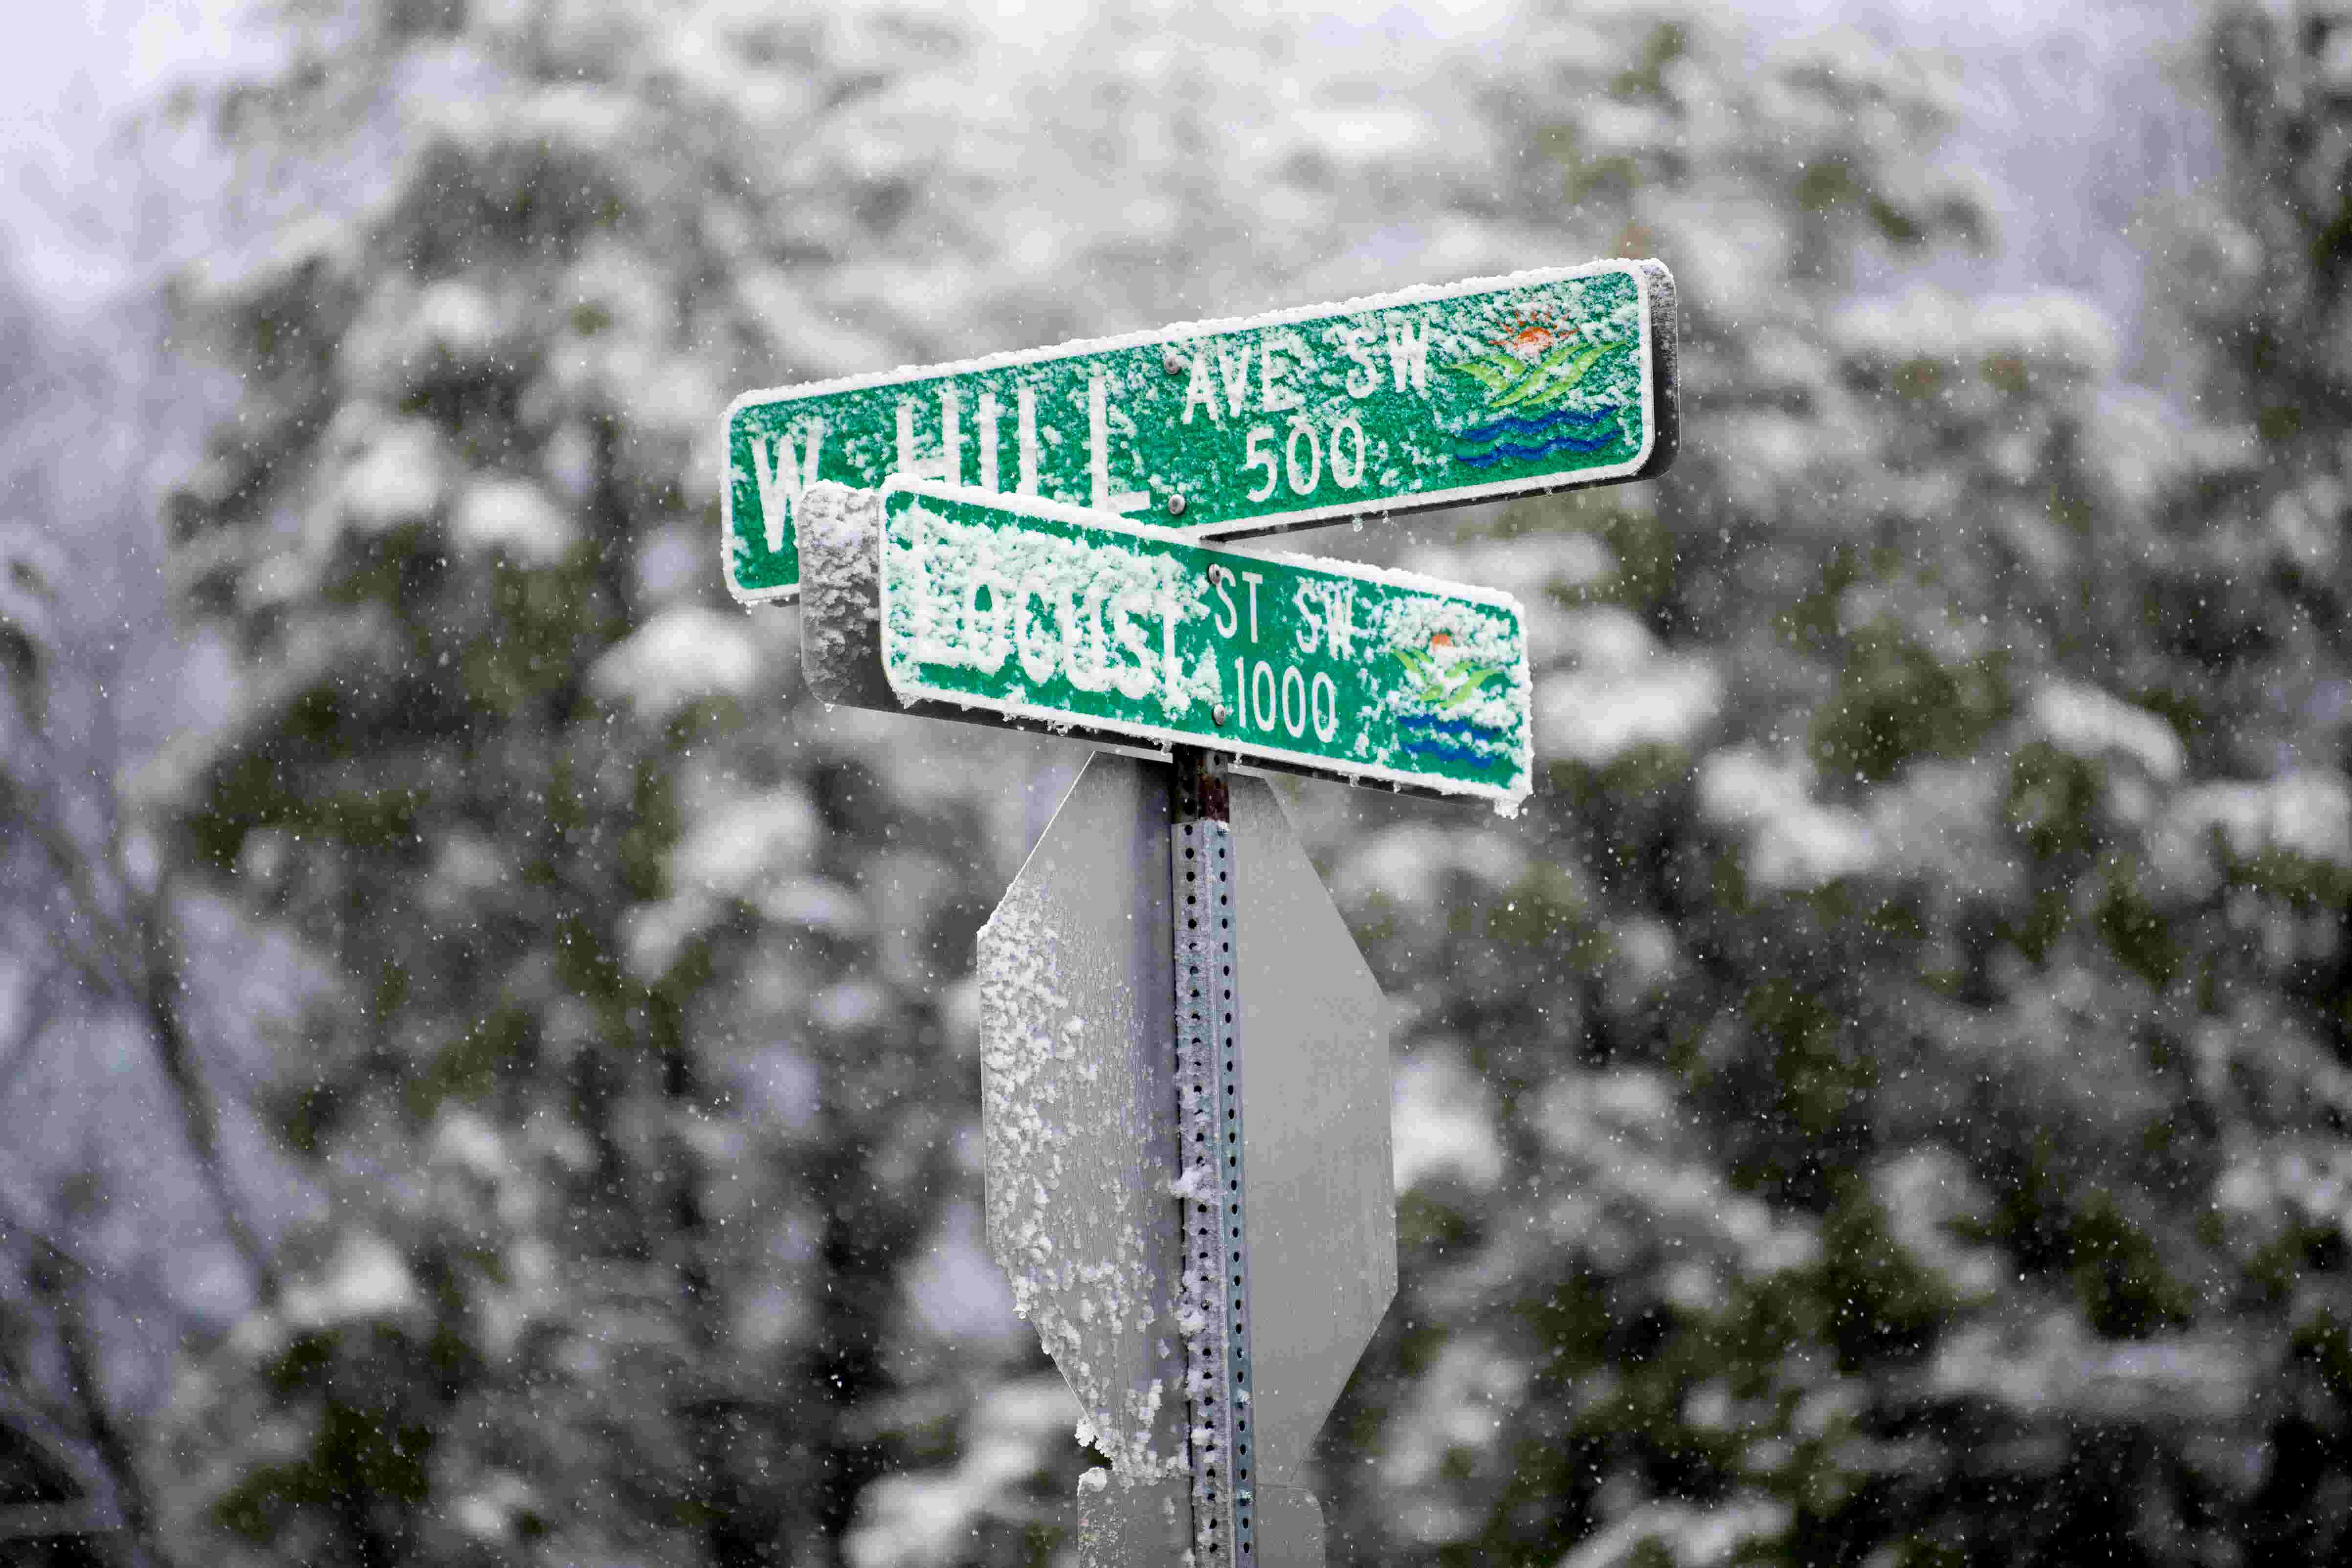 Snow blankets the Knoxville area